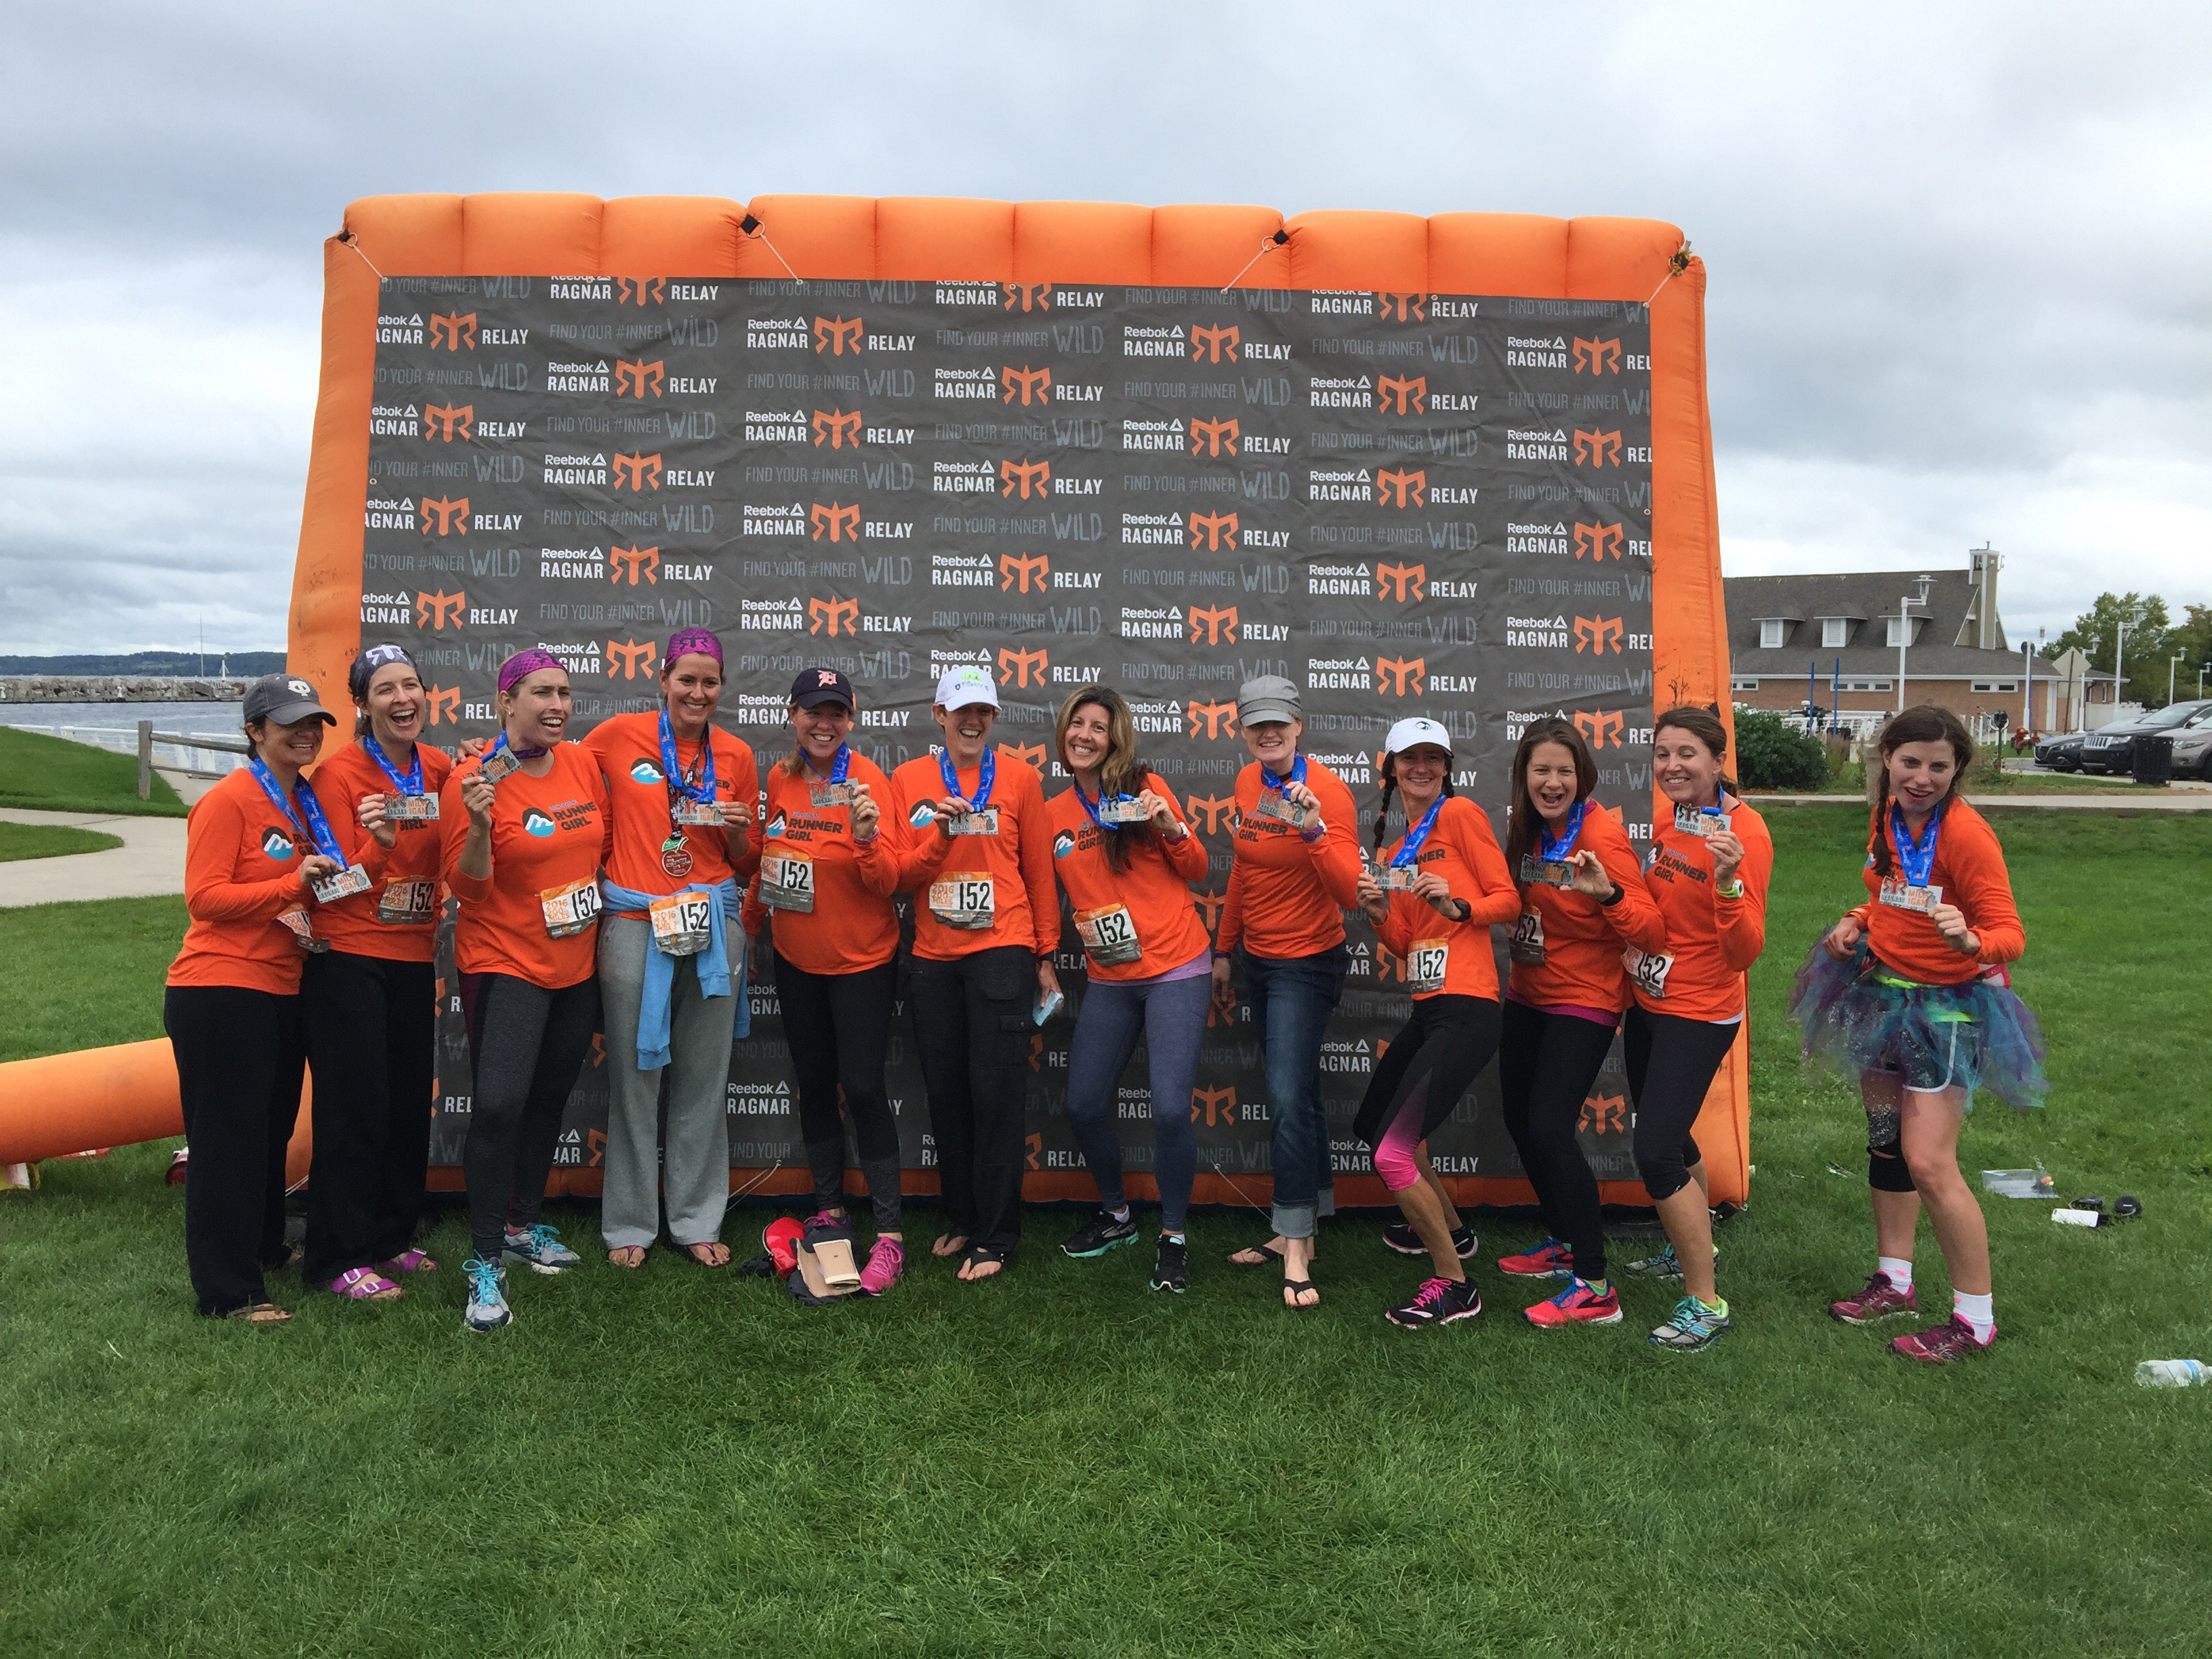 Team MRG at the inaugural Reebok Ragnar Michigan, Sept. 30-Oct. 1. The race started in Muskegon and finished in Traverse City.